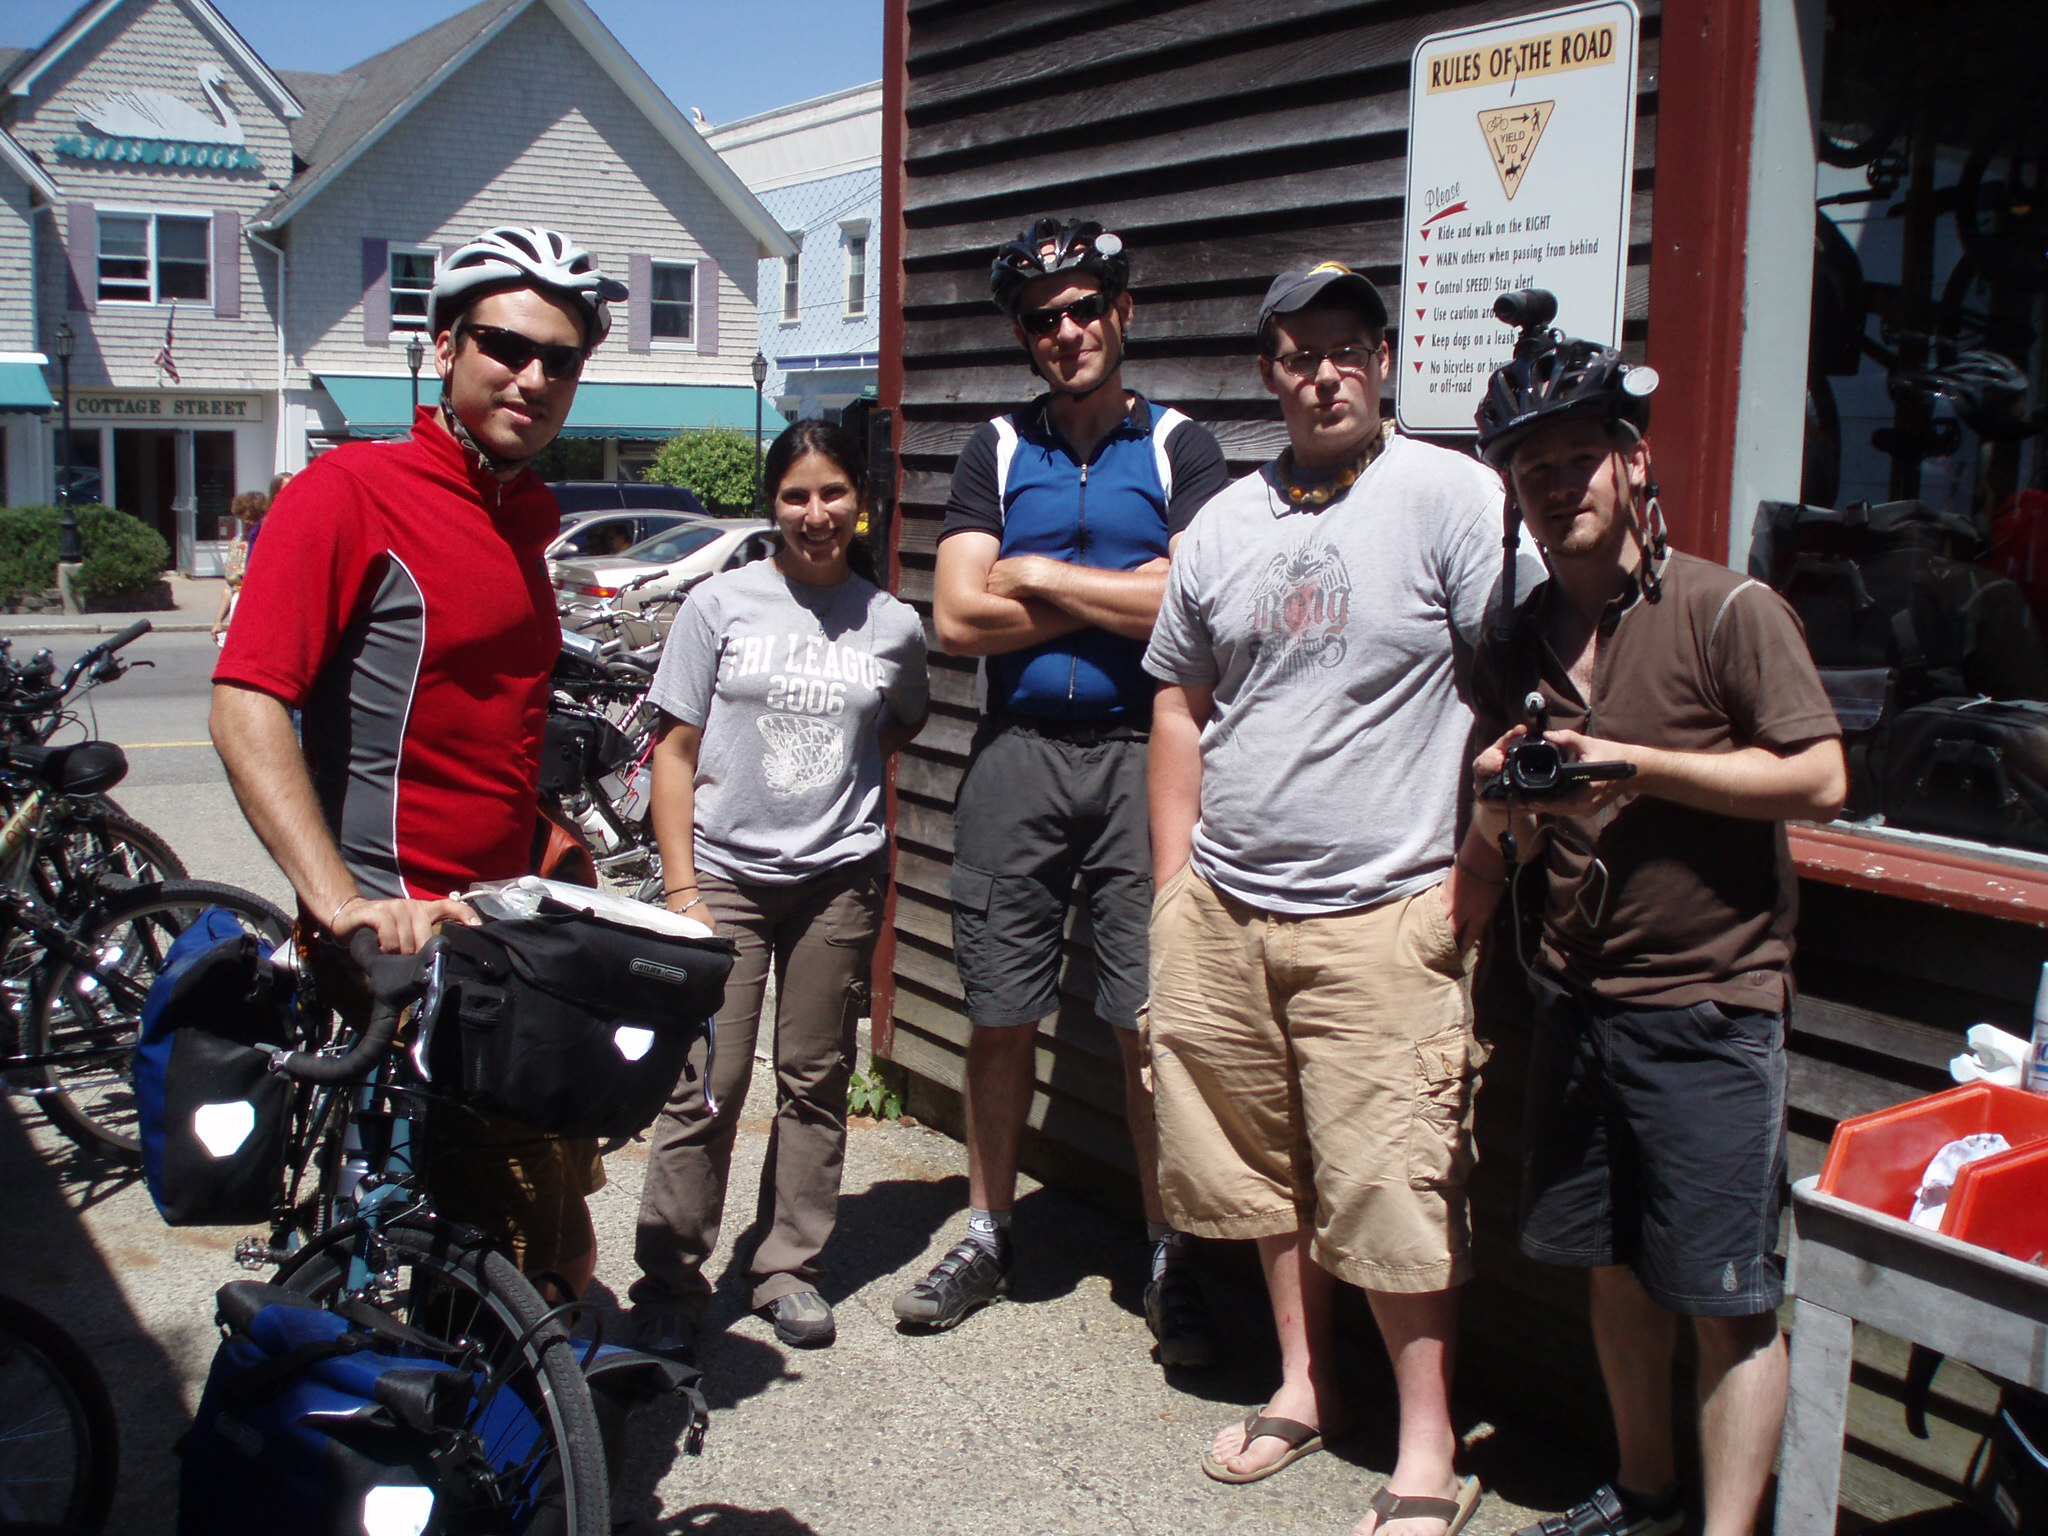 Group Photo of Mike, Chuck and Jamie meeting other people at a bike shop